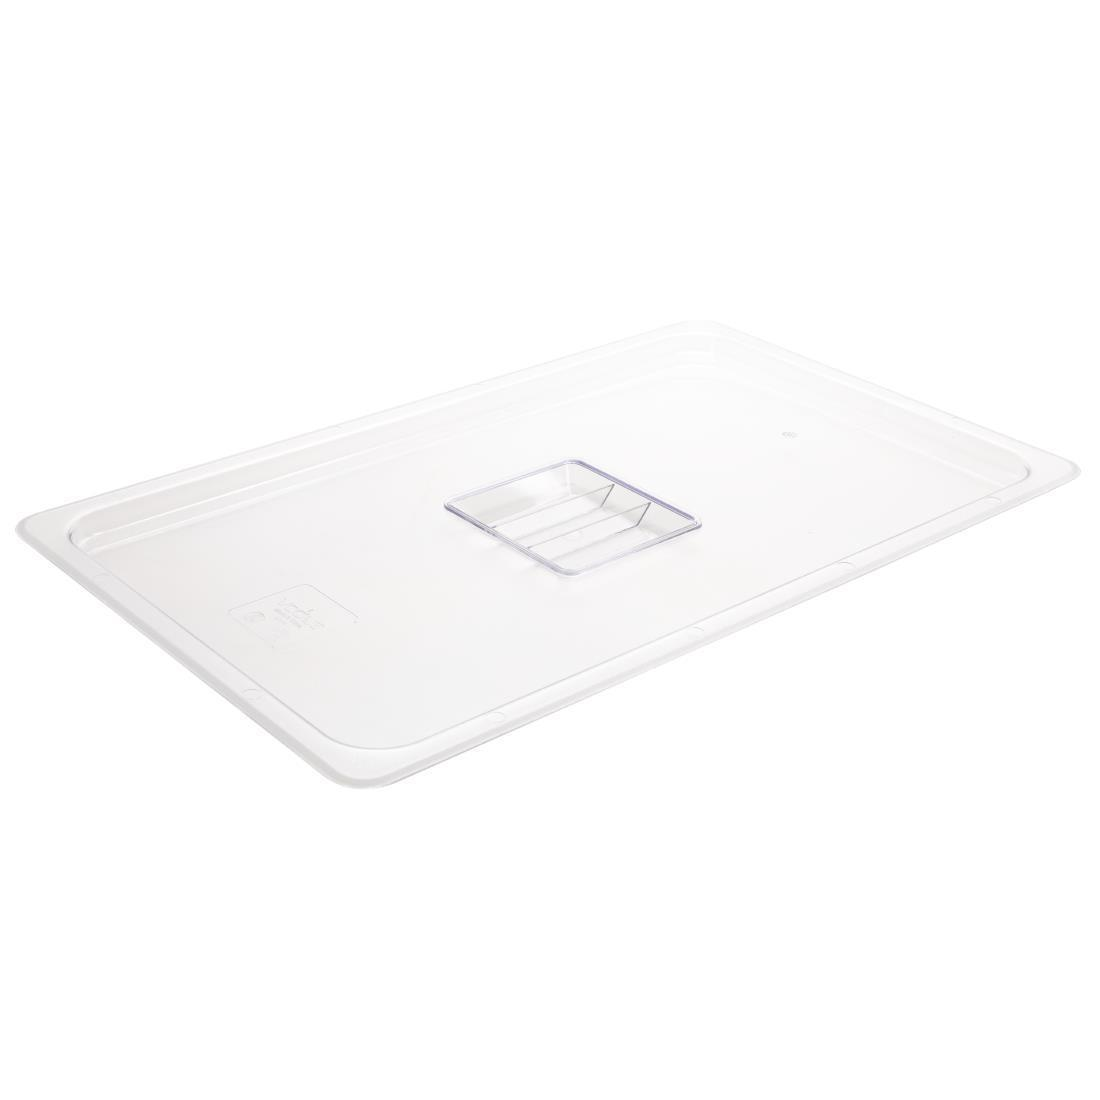 Vogue Polycarbonate 1/1 Gastronorm Lid Clear - U244